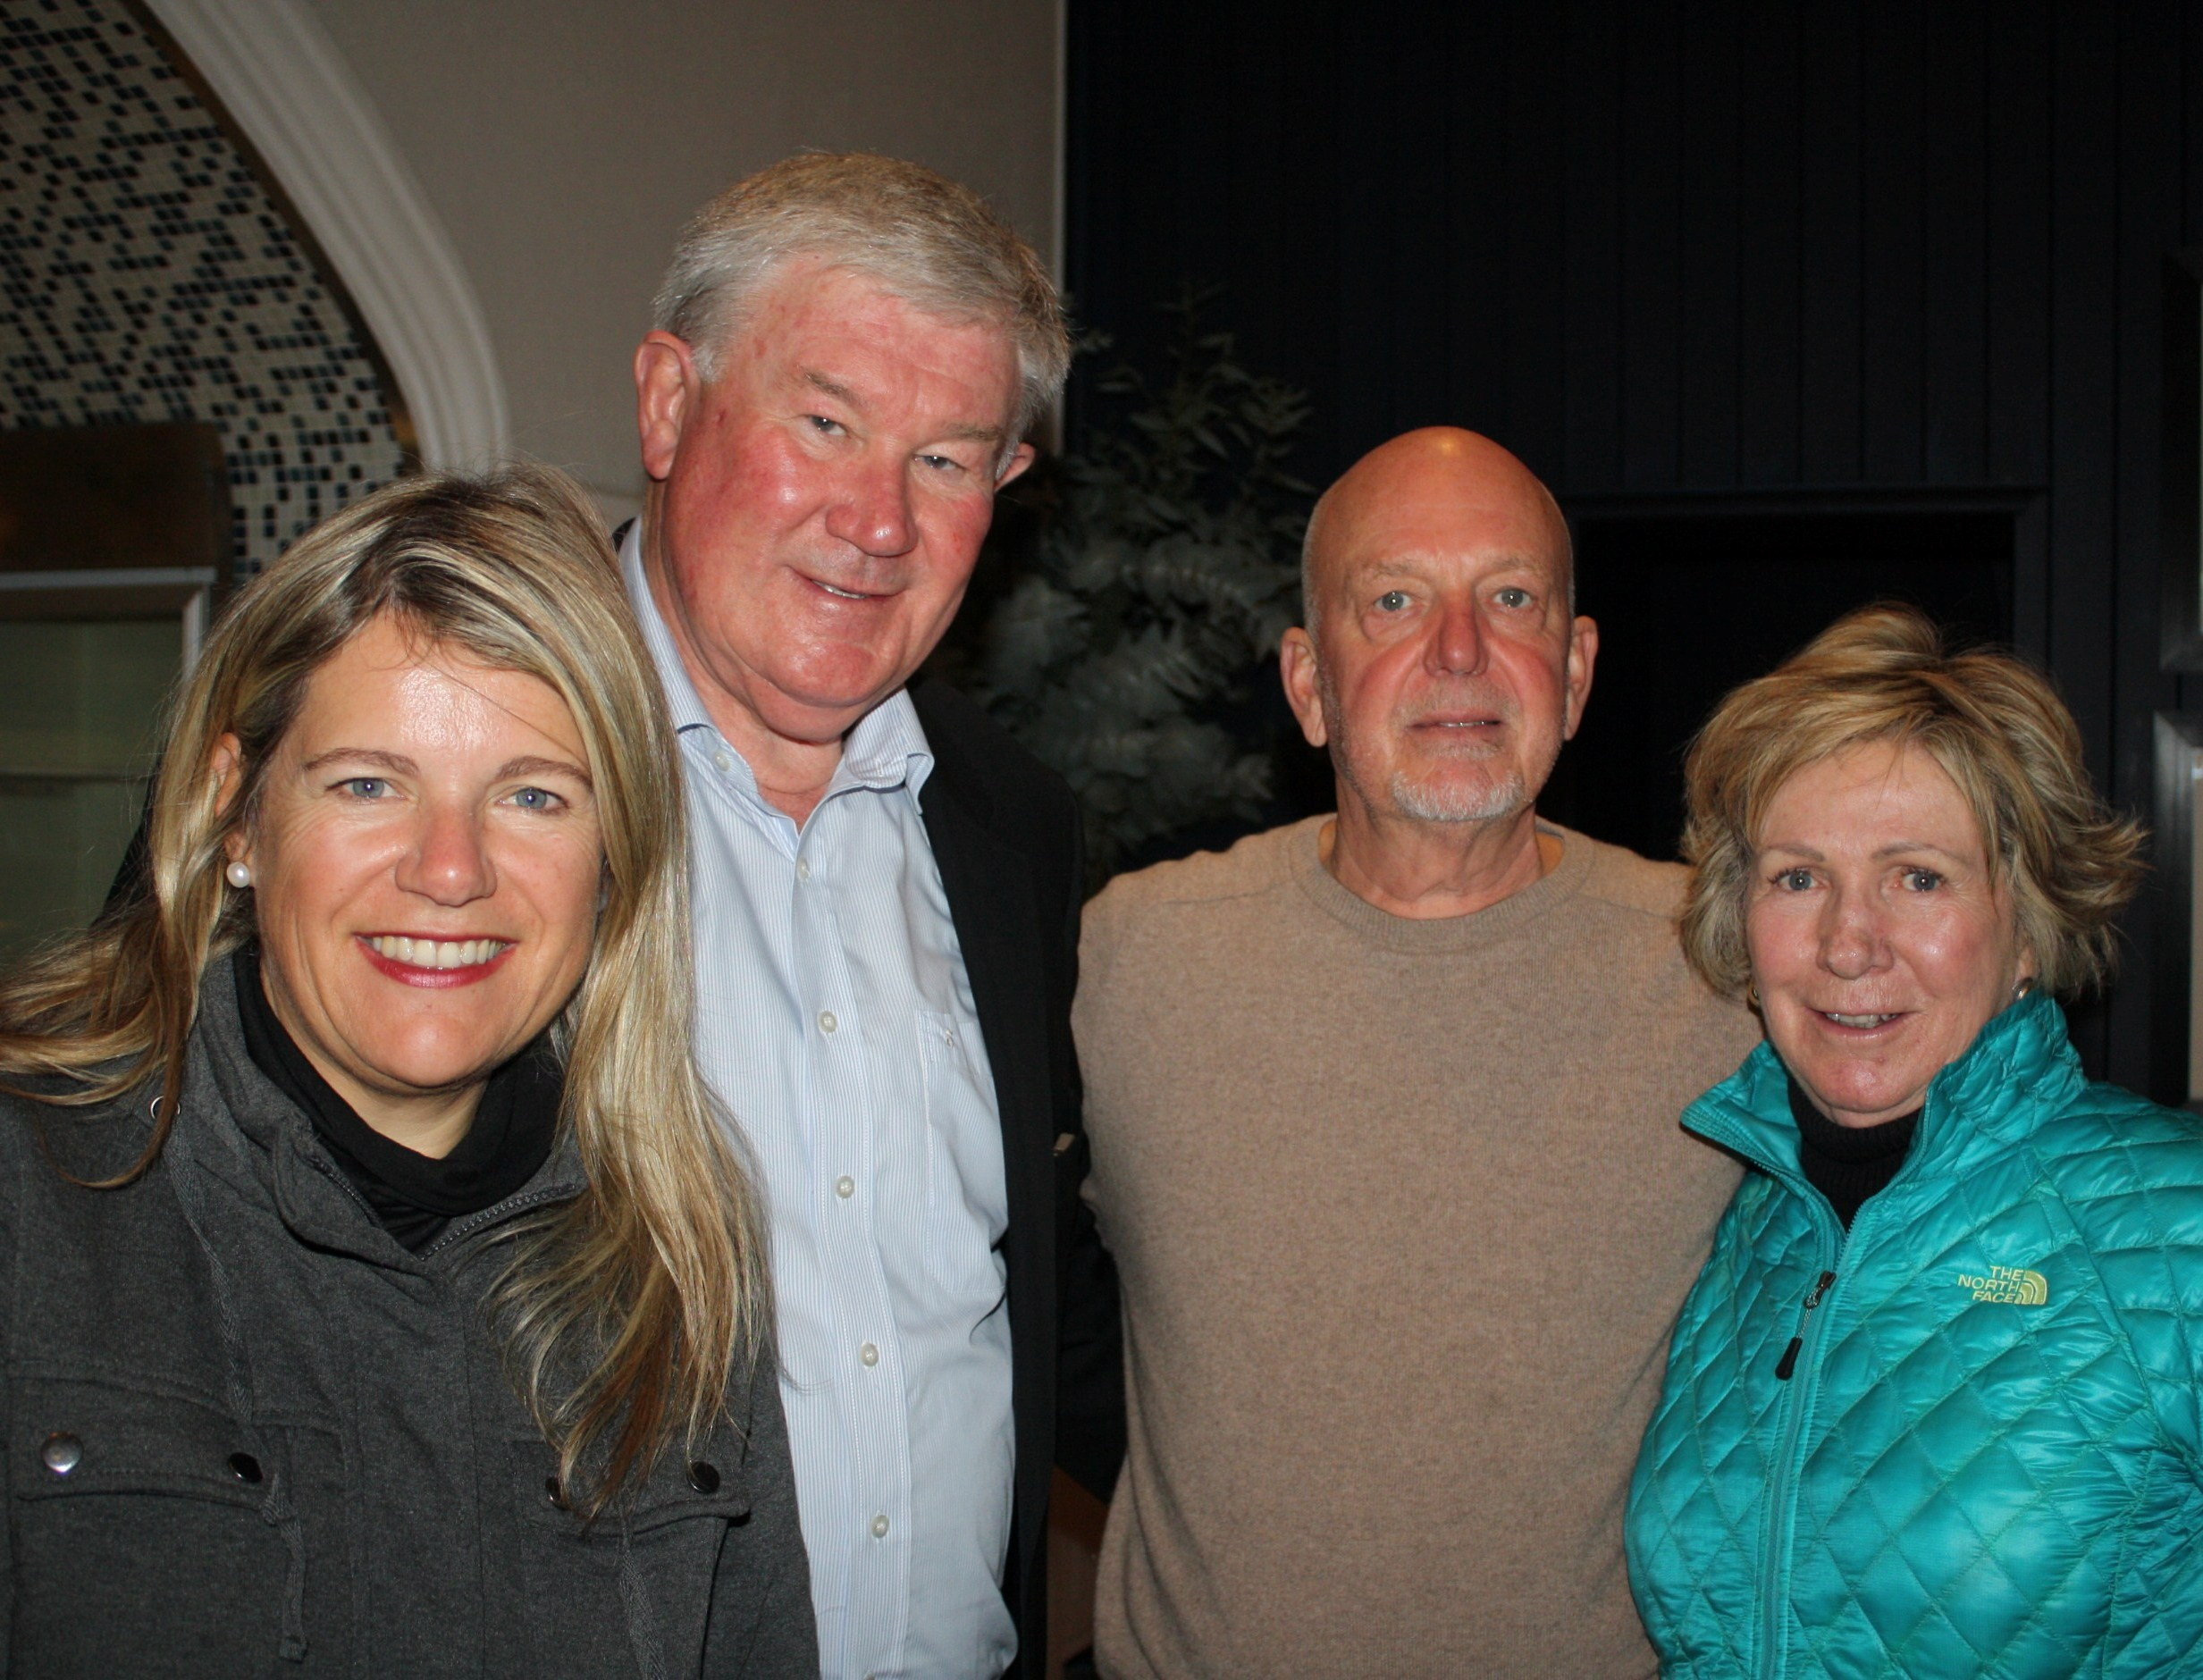 Pinot Noir as FynArt with Frieda Lloyd, Hermanus Wine Route, Danie de Wet, Melvyn Minnaar and Norma Ratcliffe.